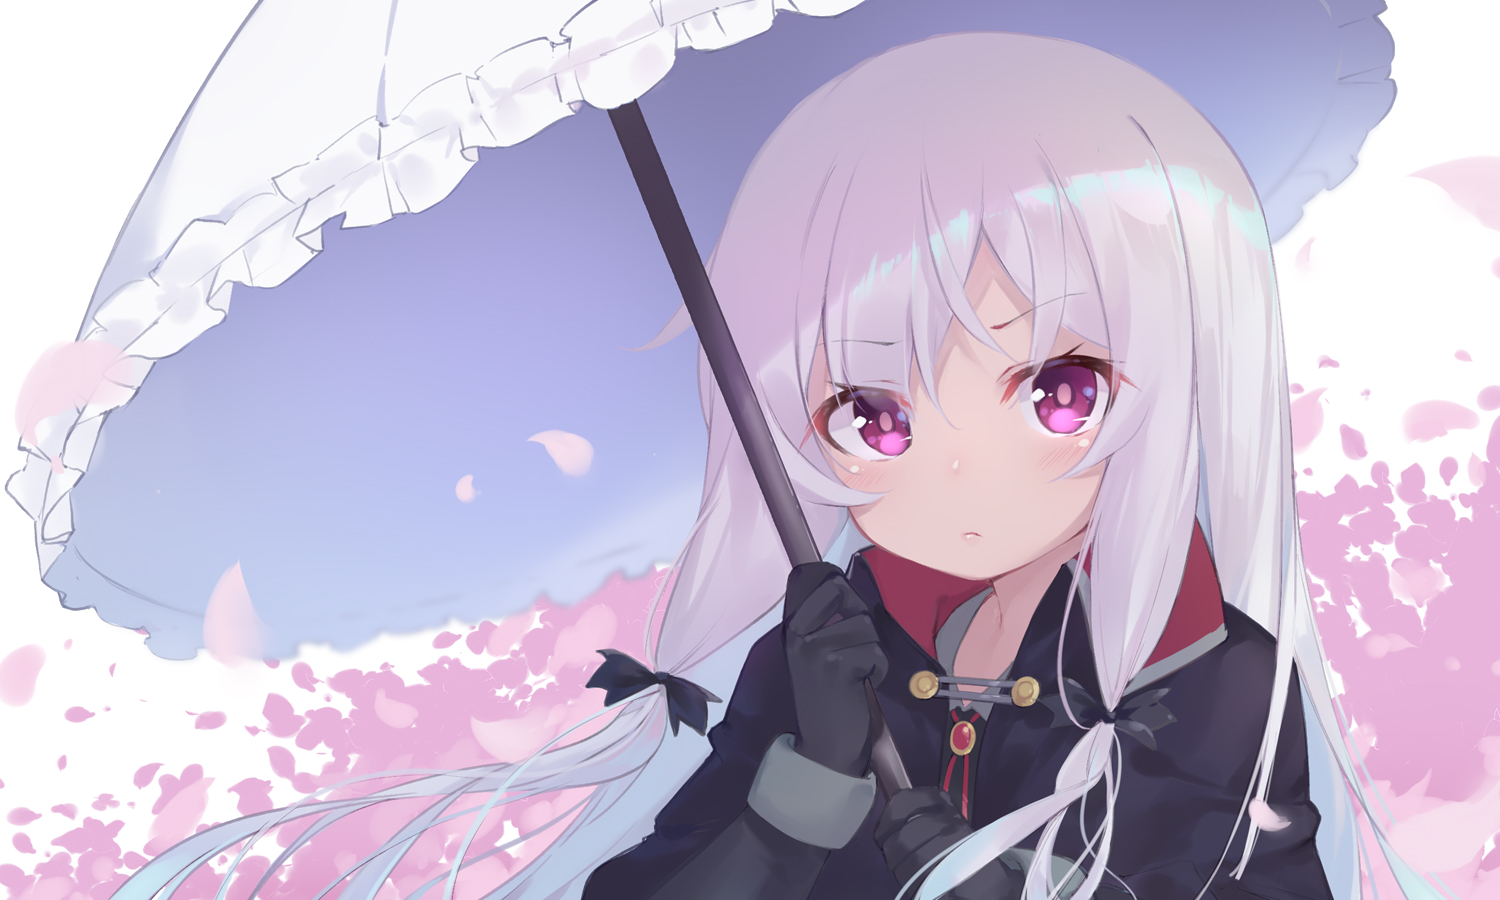 blush cape gloves long_hair petals purple_eyes sophie_twilight tonari_no_kyuuketsuki-san ttnap umbrella vampire white_hair